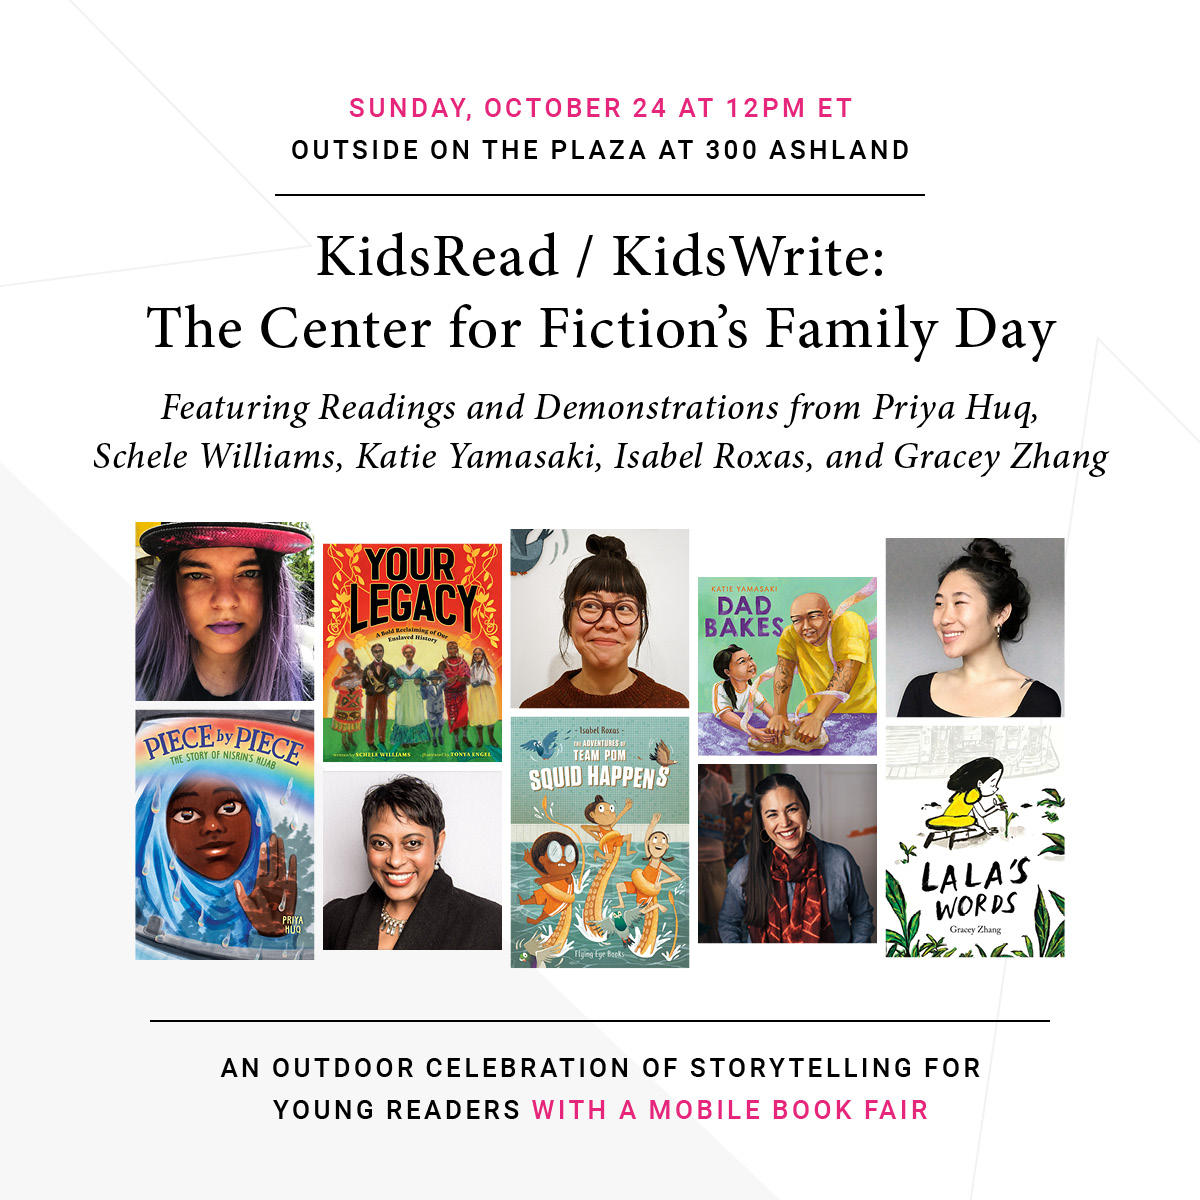 KidsRead / KidsWrite: The Center for Fiction's Family Day at The Plaza at 300 Ashland